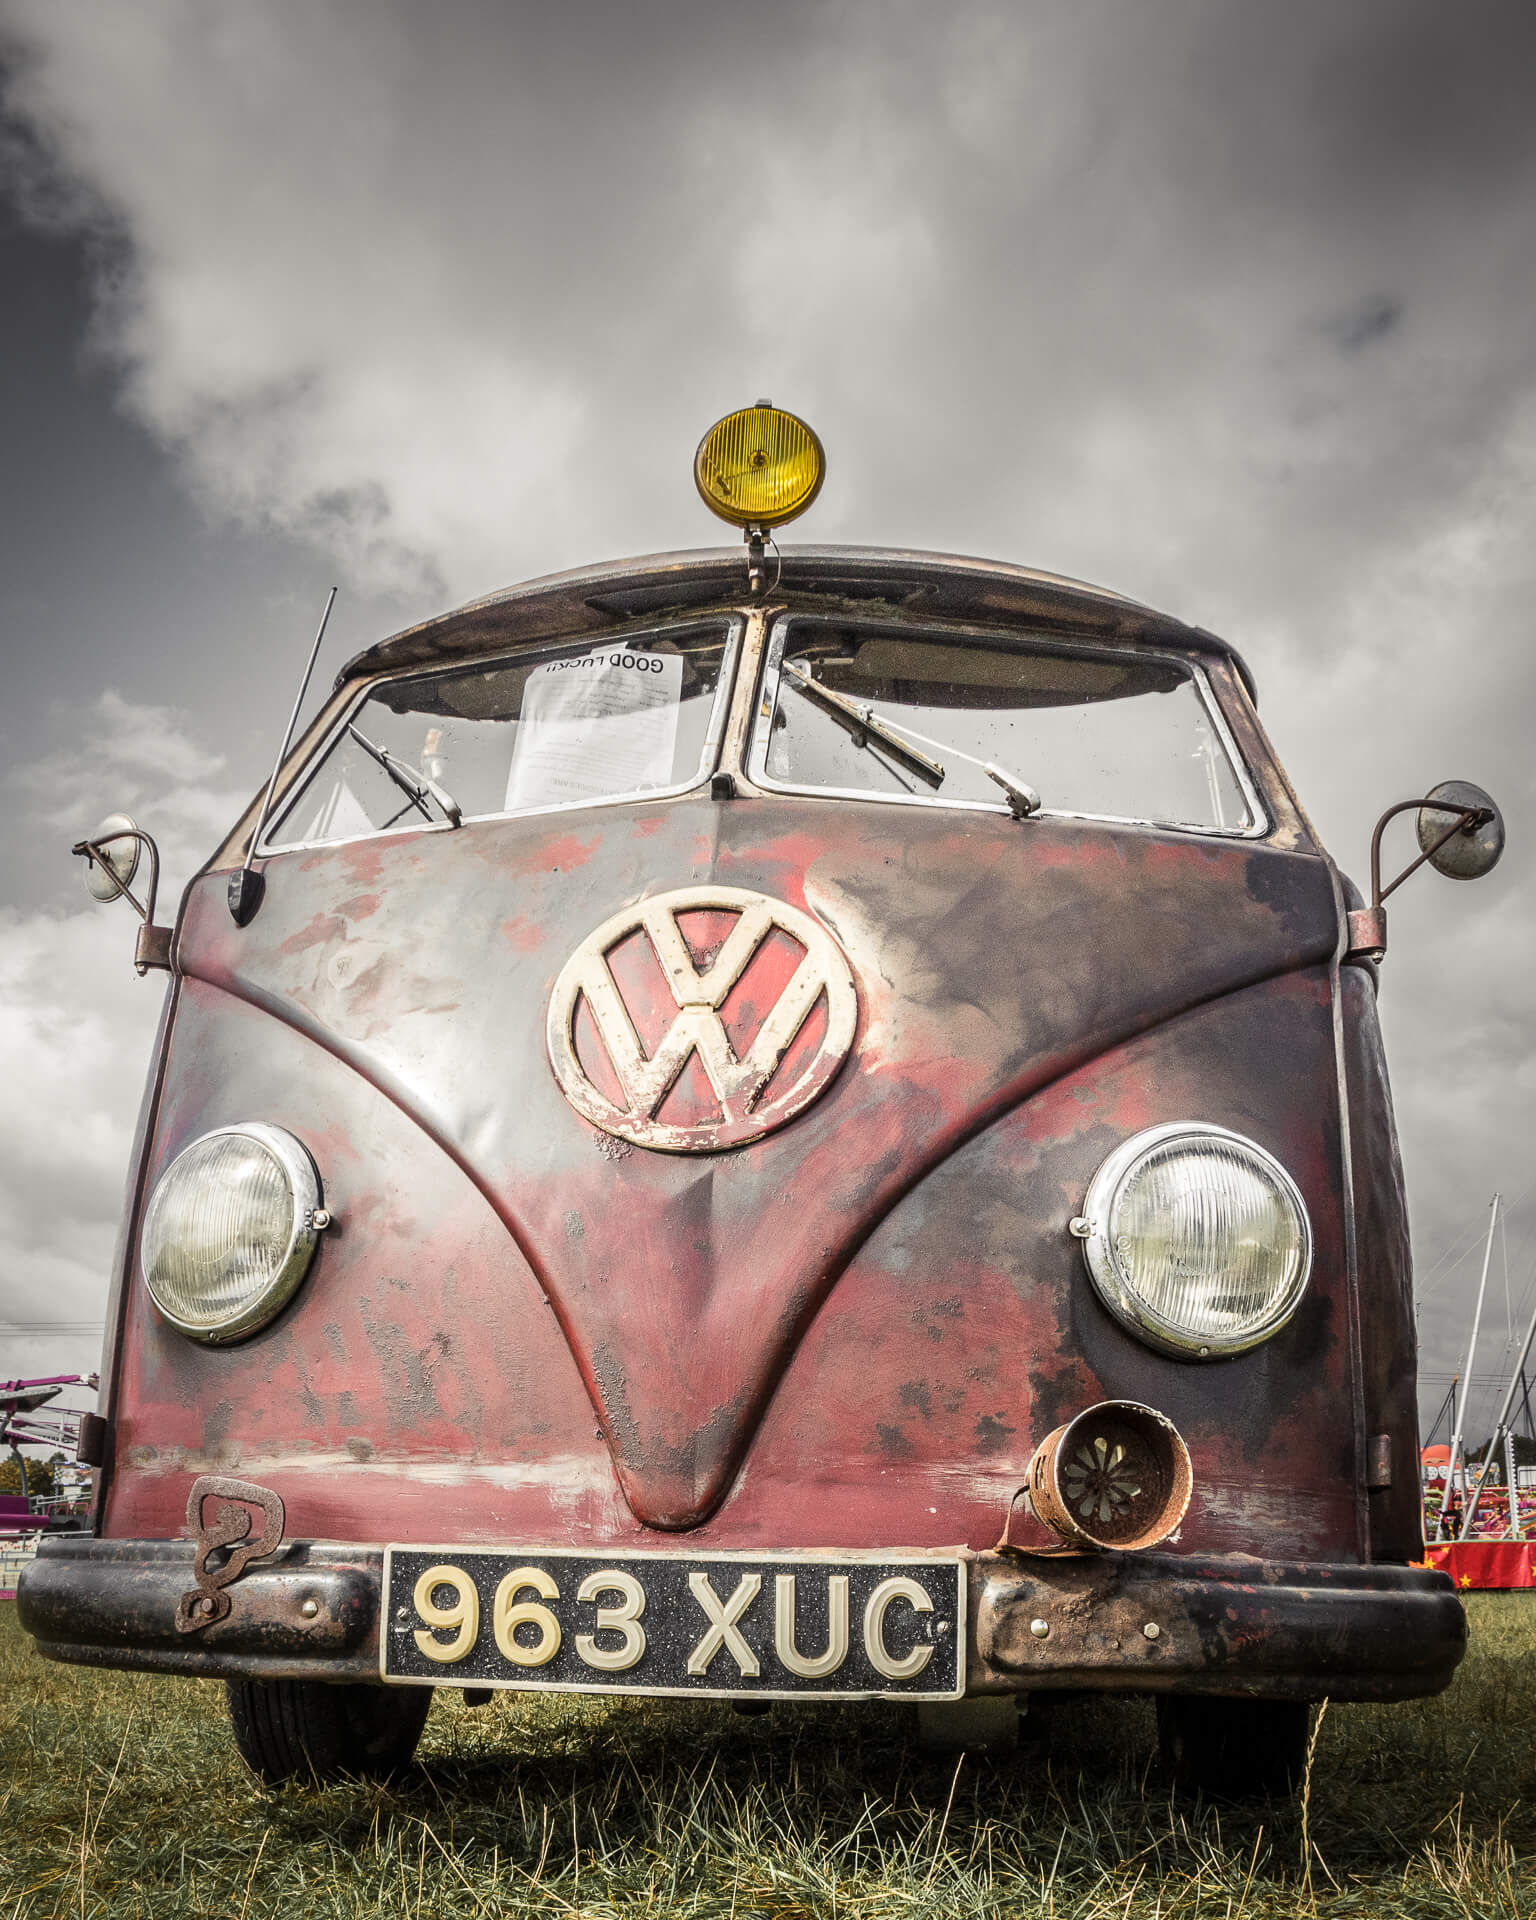 The front end view of a customised split screen VW T1 van in relative close up. This image, taken from low level, shows the dark red paint job of the van, and the predominantly large iconic VW white badge. This image was take at the Dubs of Anarchy show in 2019.